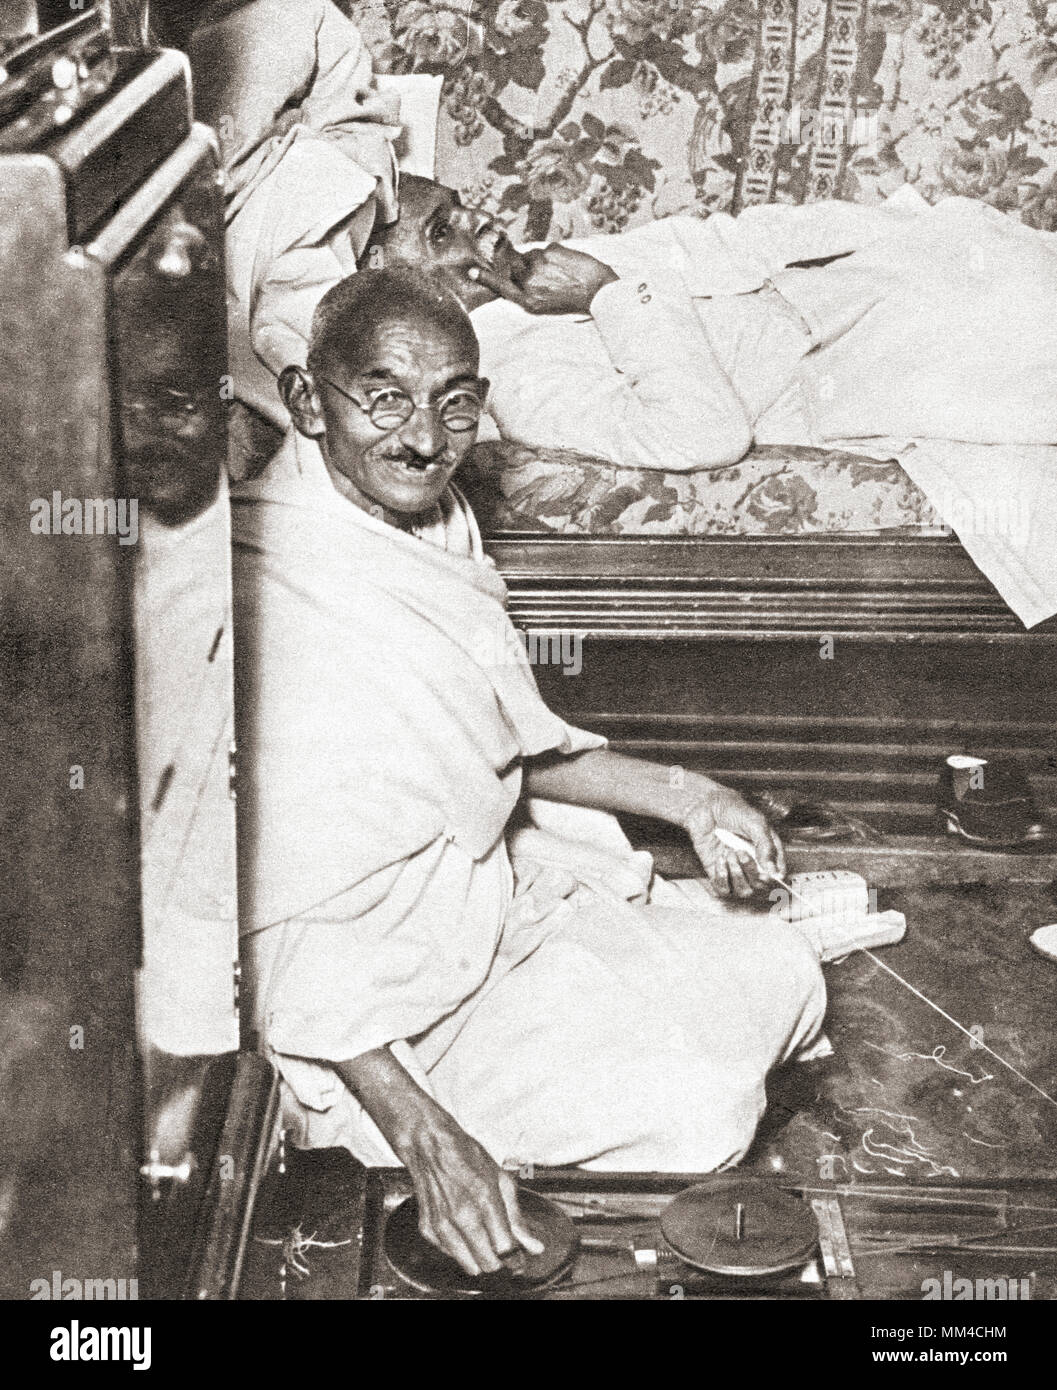 Mohandas Karamchand Gandhi, aka Mahatma Gandhi,1869 – 1948. Indian activist, leader of the Indian independence movement against British rule.  Seen here at the Round Table Conference, 1931. On the floor beside him is his spinning wheel, a symbol of his attempt to resurrect Indian industry at the expense of British trade.  From The Pageant of the Century, published 1934 - Stock Image